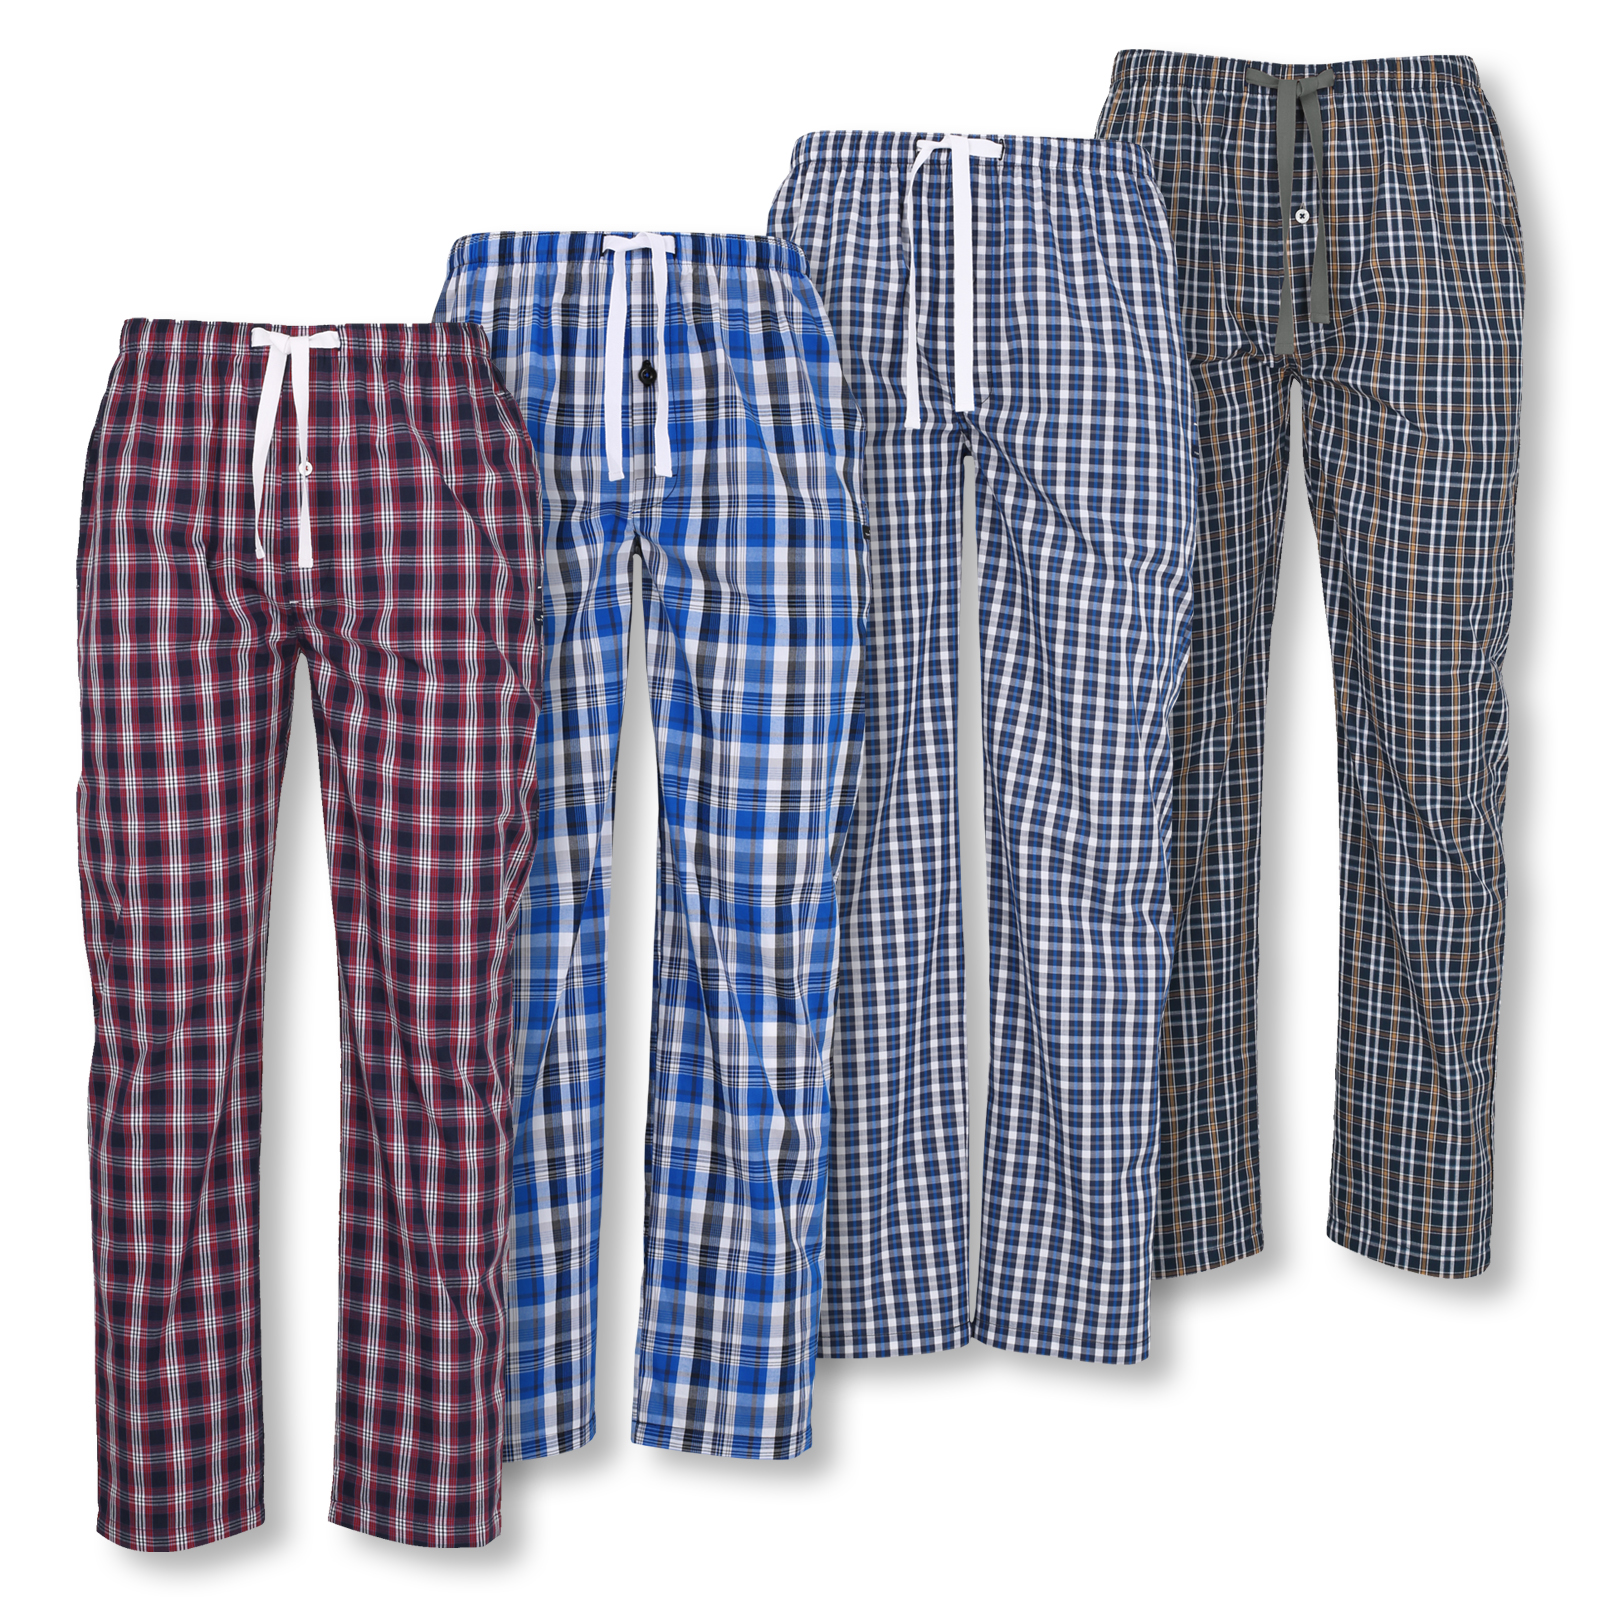 Tom Tailor Herren Pyjamahose lang Homewear Schlafanzug Hose 70924 in blue / red / white check